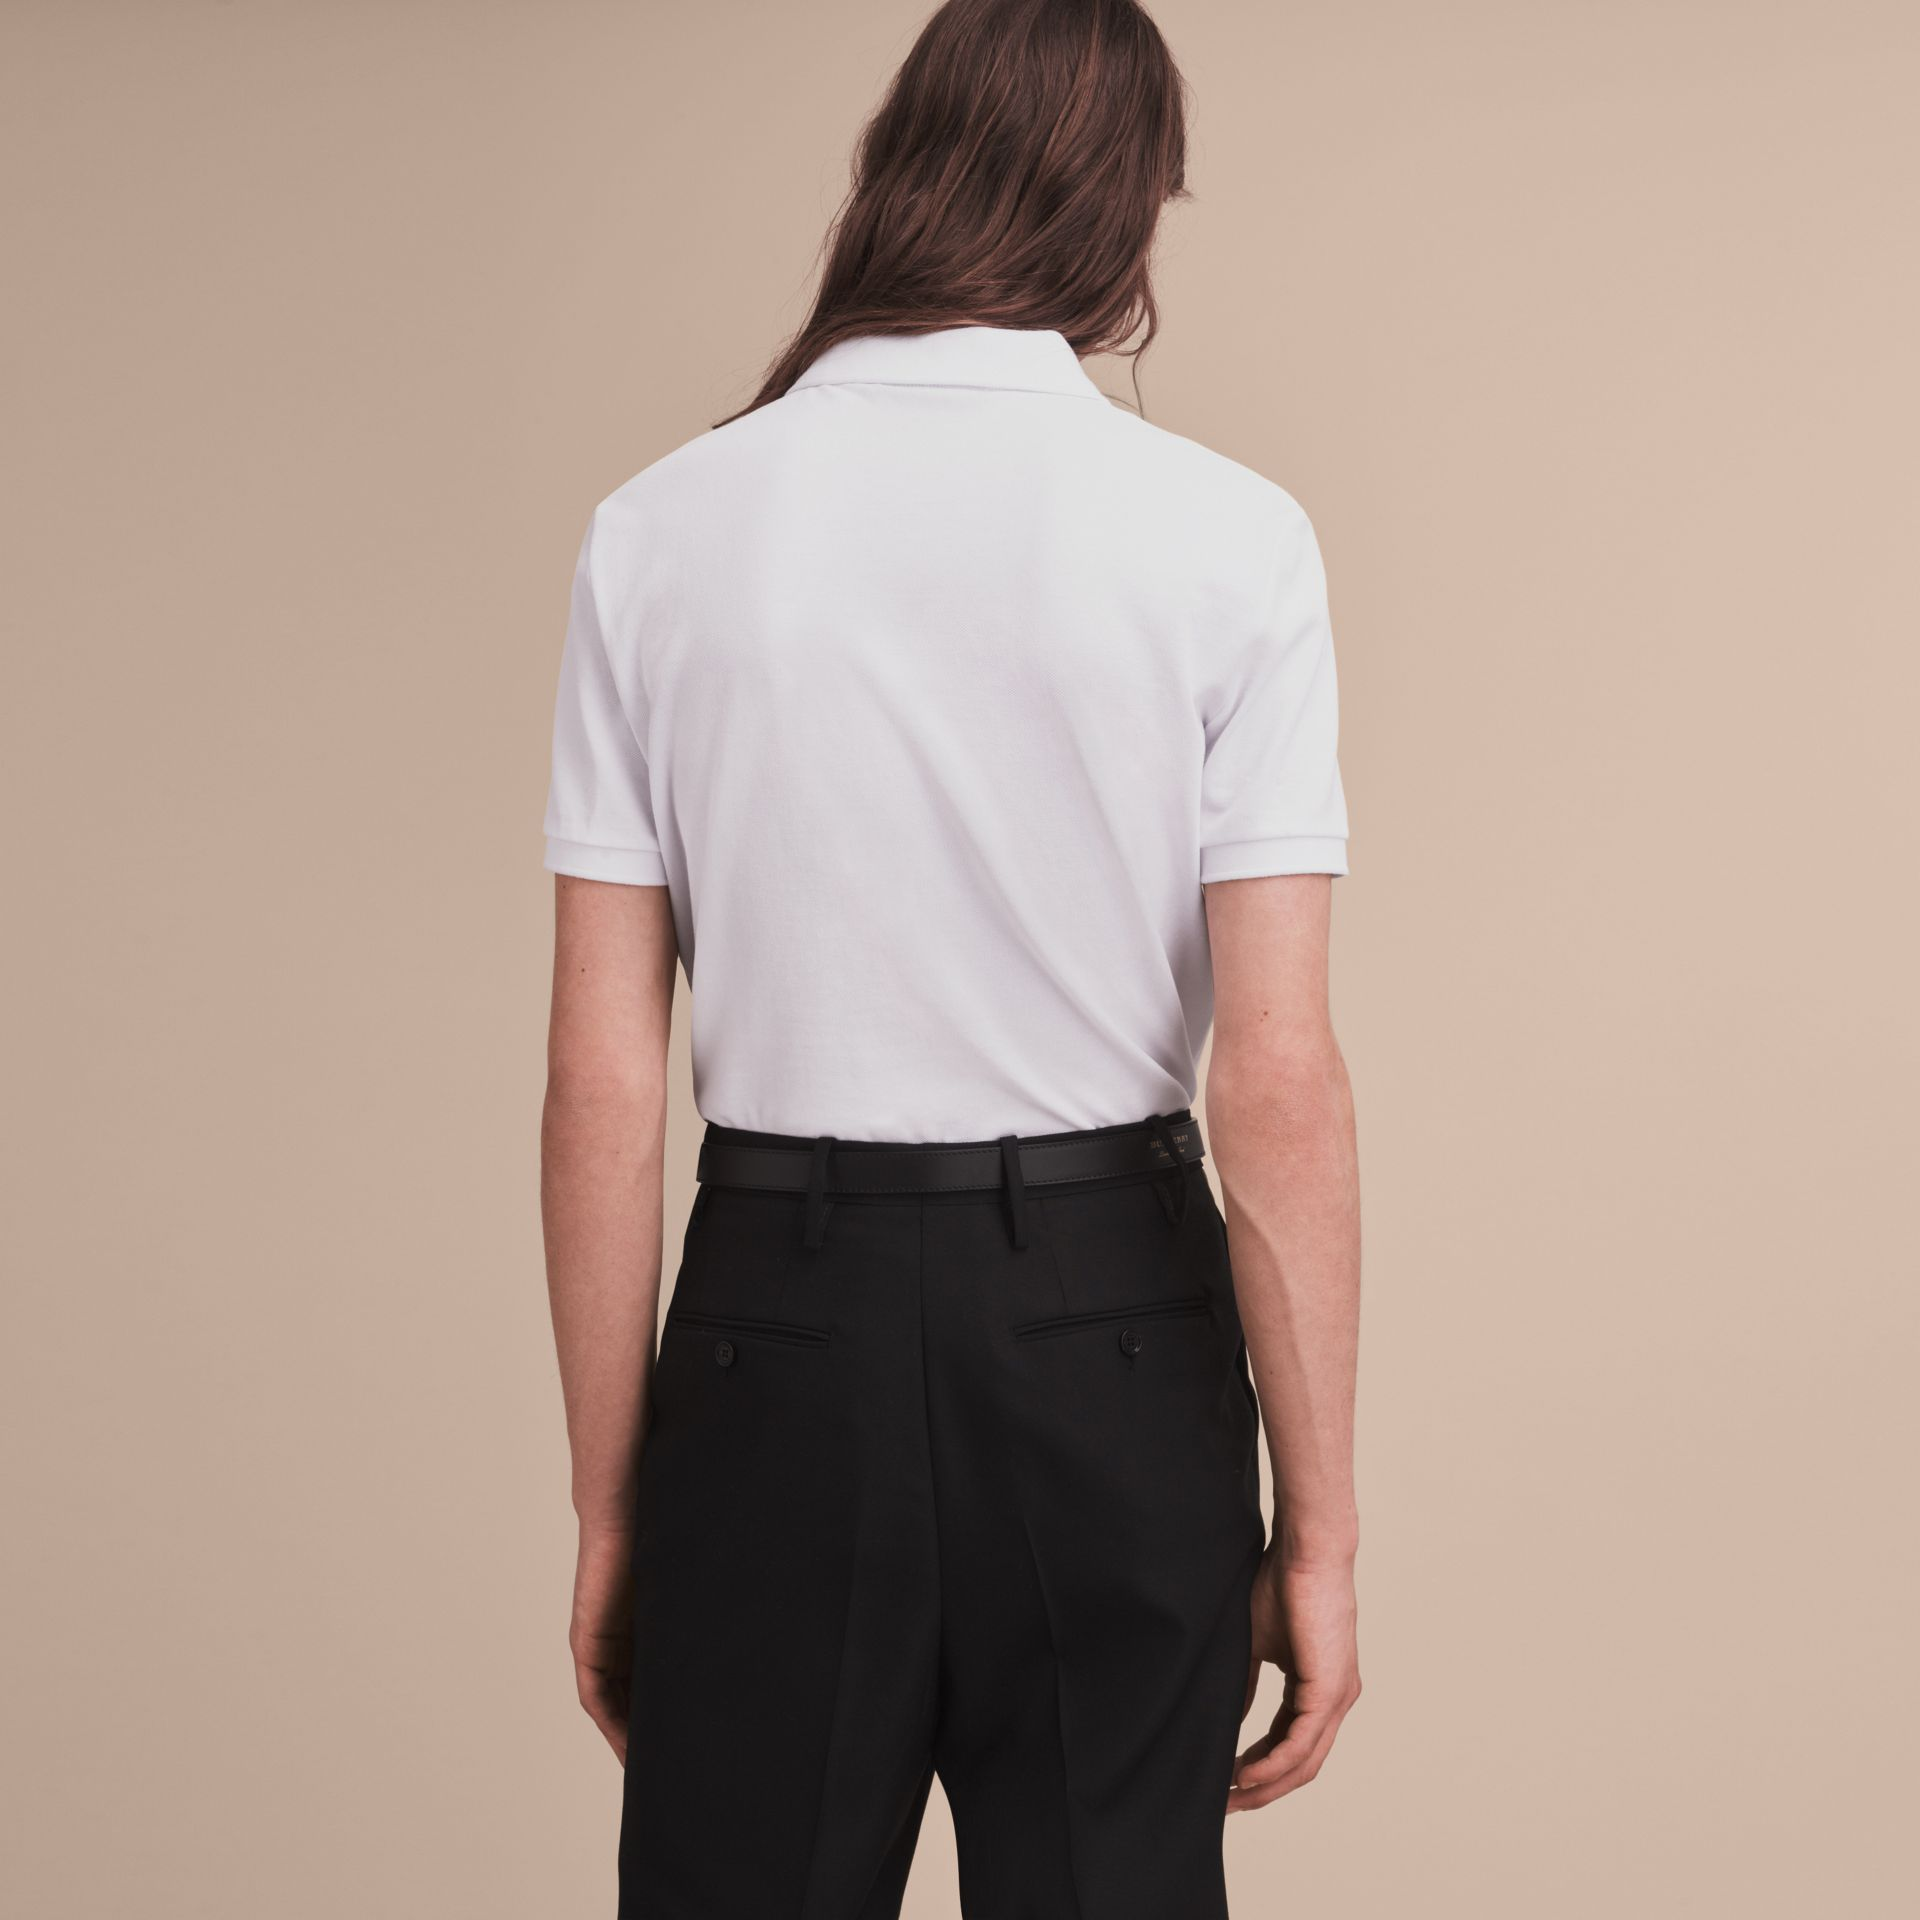 Pallas Heads Appliqué Cotton Polo Shirt in White - Men | Burberry Singapore - gallery image 3